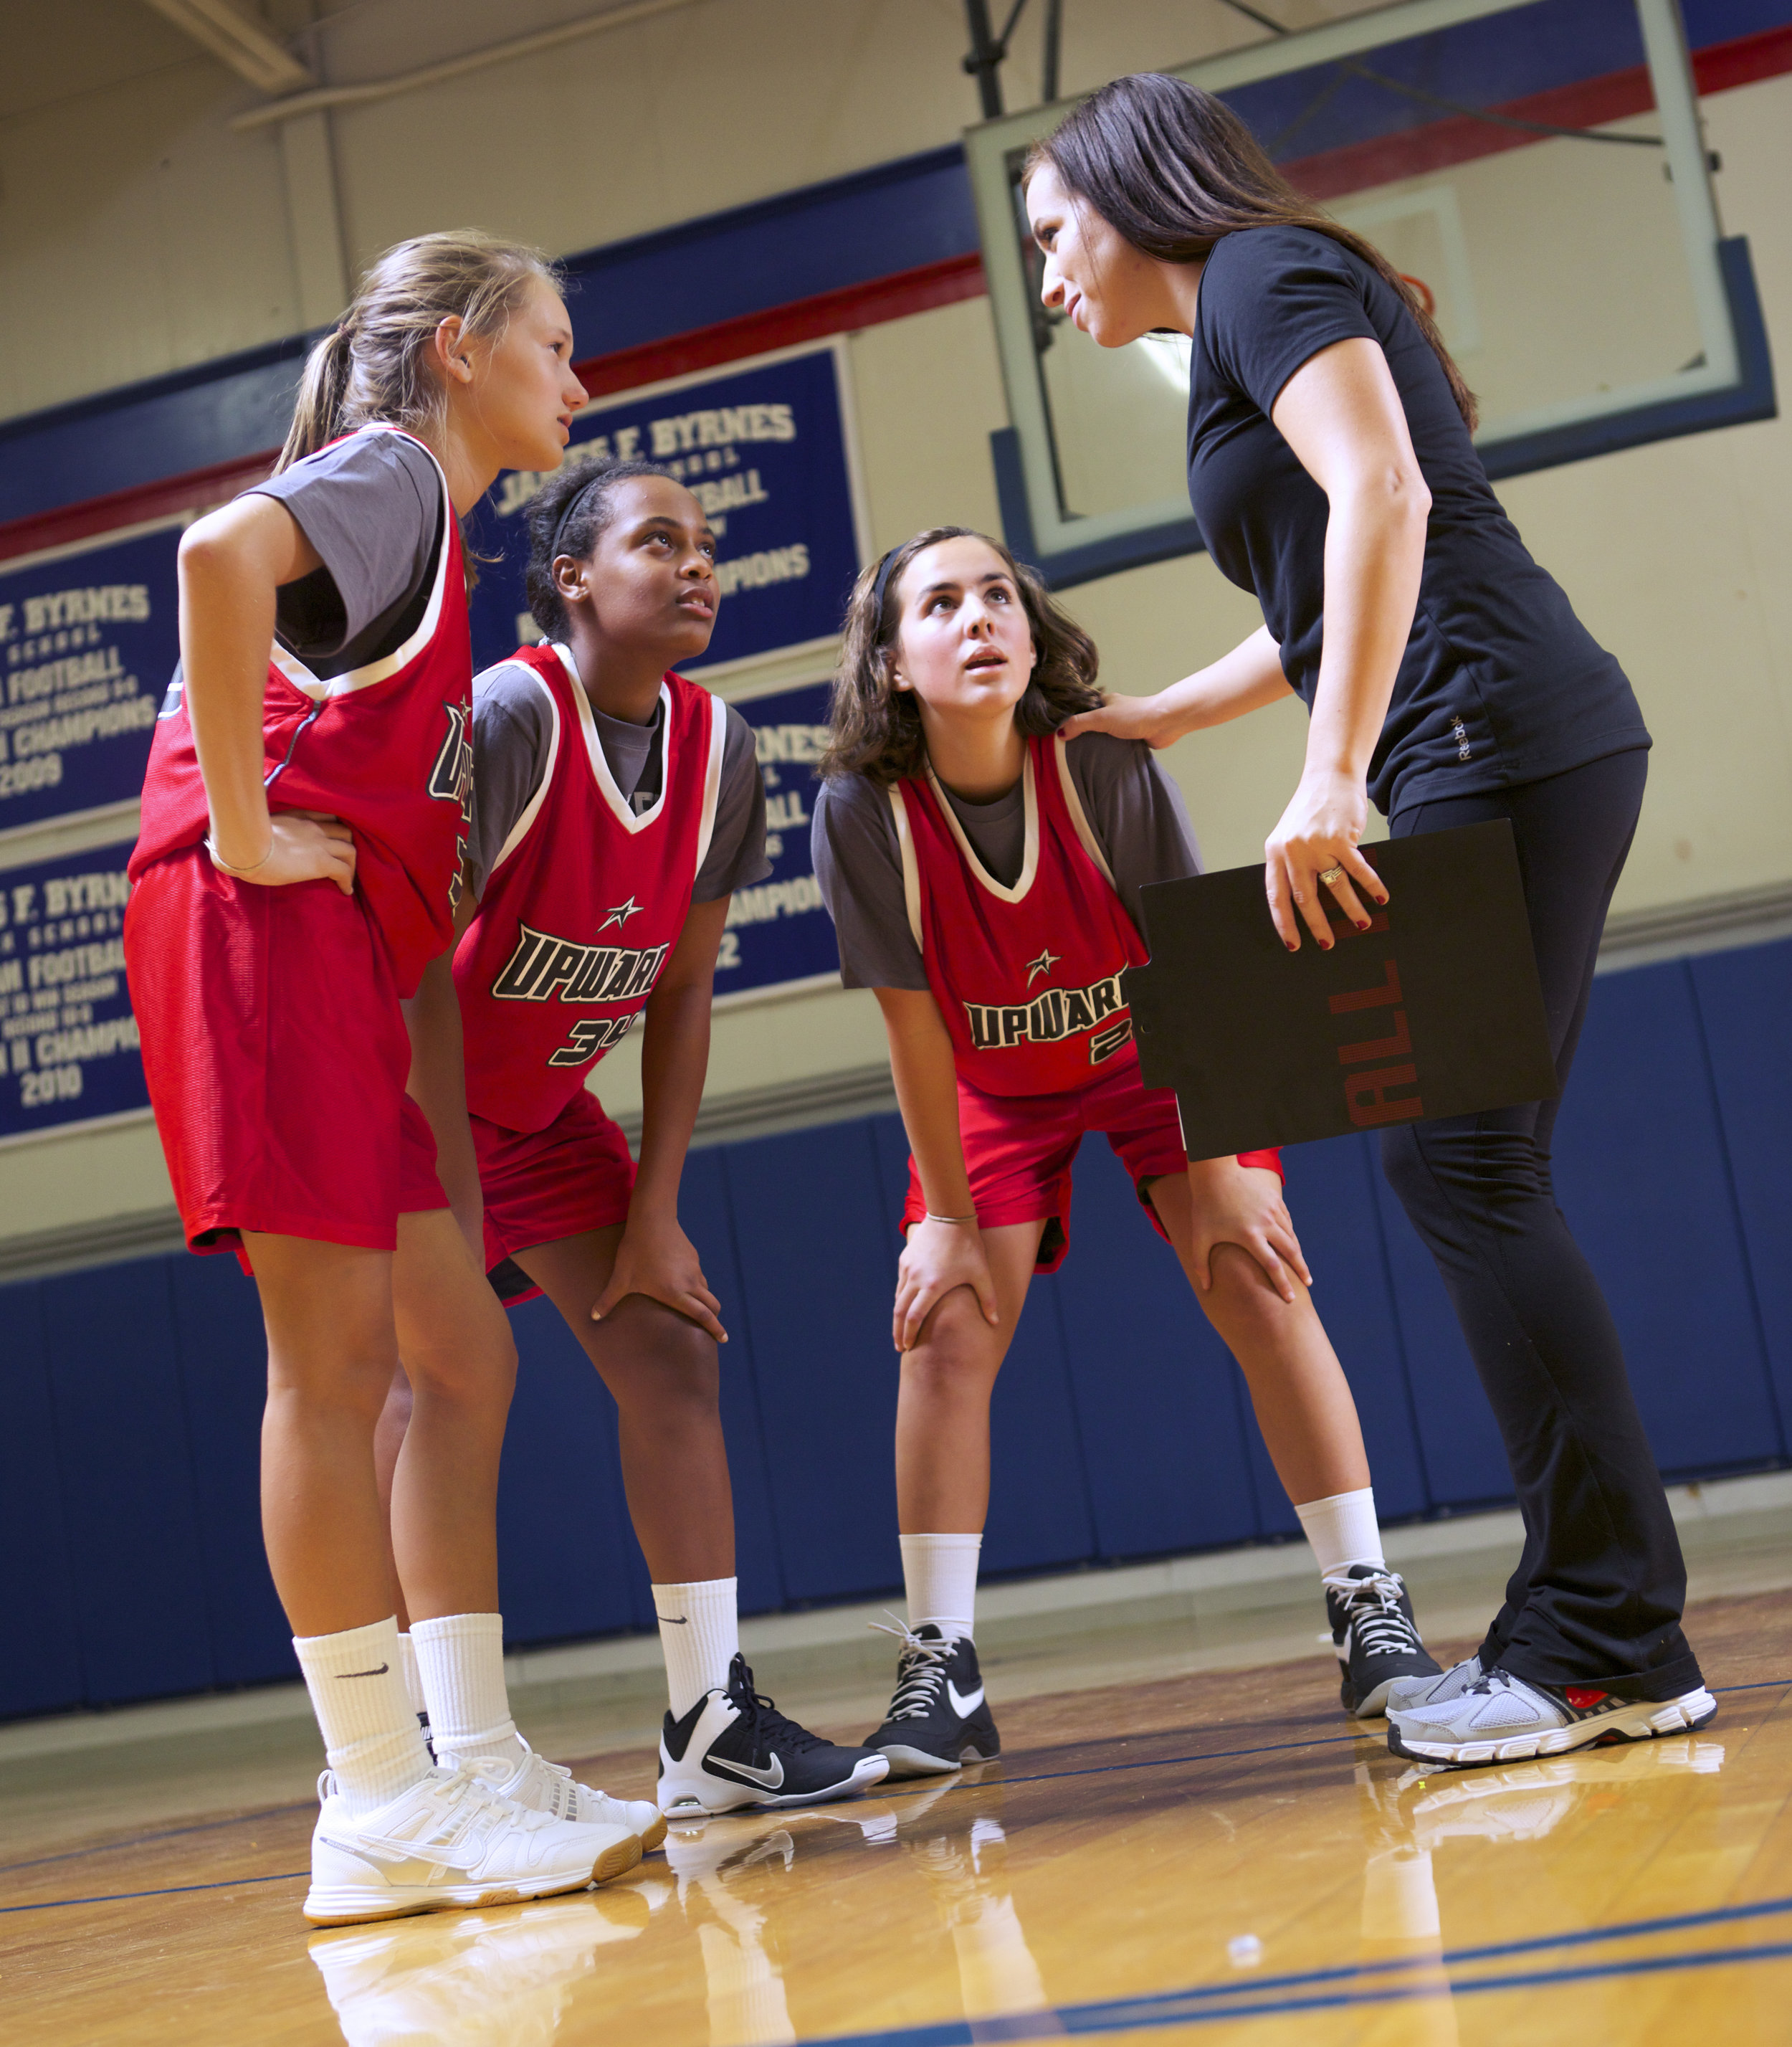 Girls Basketball Huddle.jpg